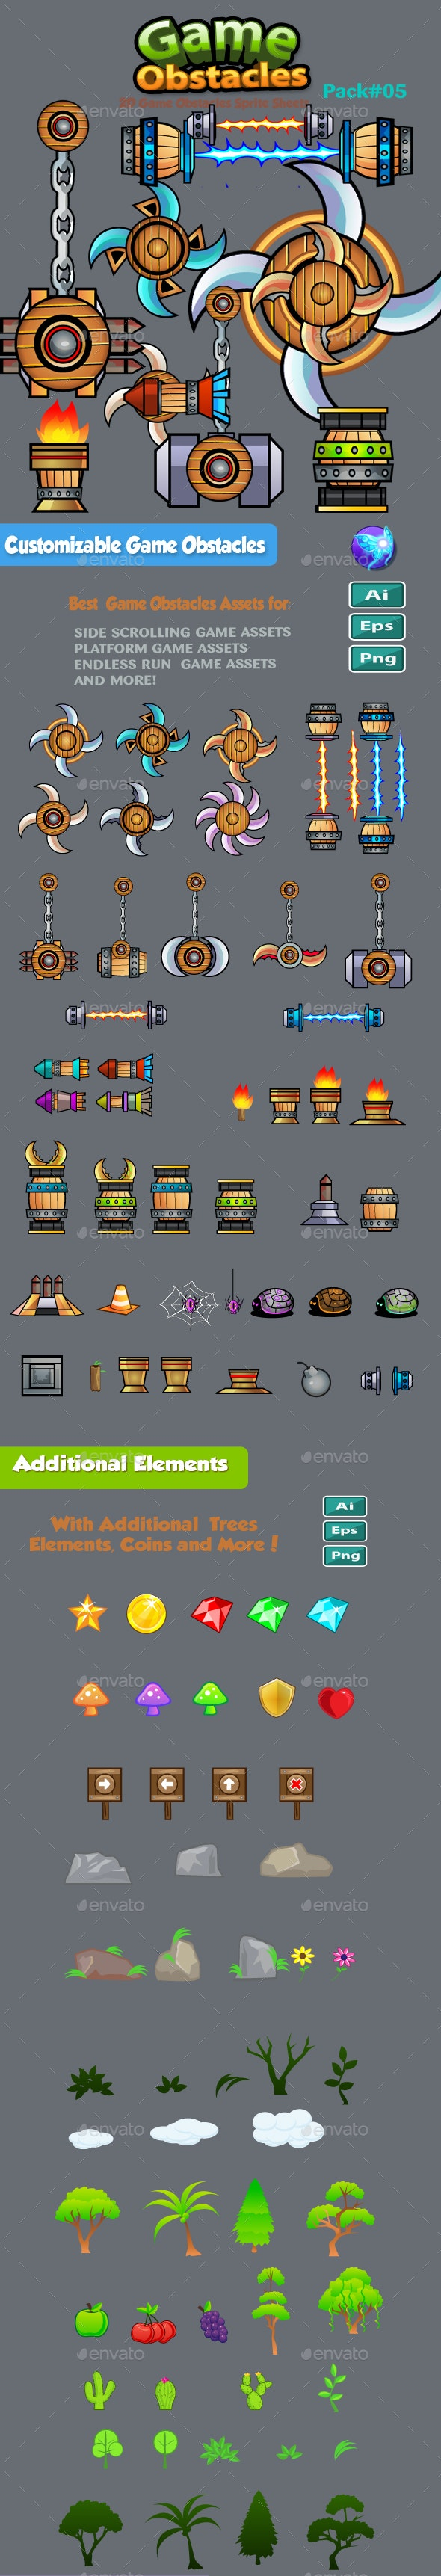 2D Game Obstacles Sprites 05 - Game Assets